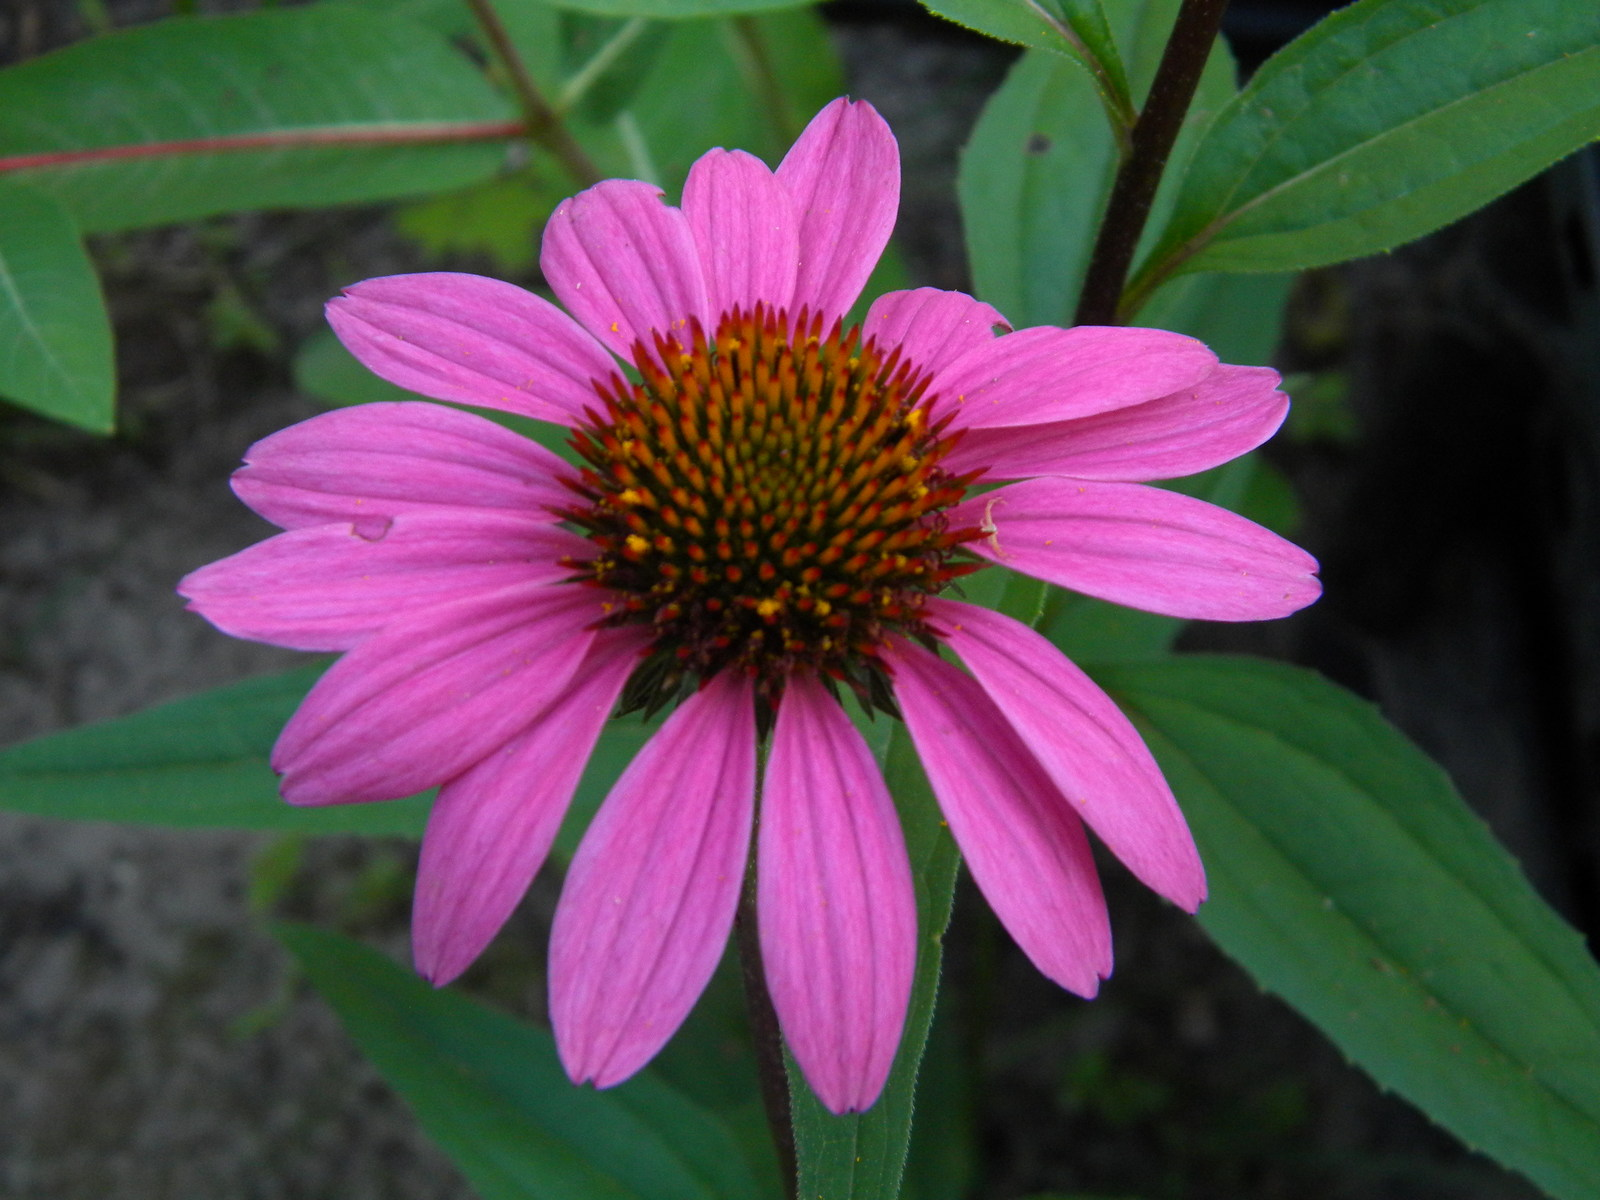 Organic Native Plant, Purple Coneflowwer, Echinacea purpurea